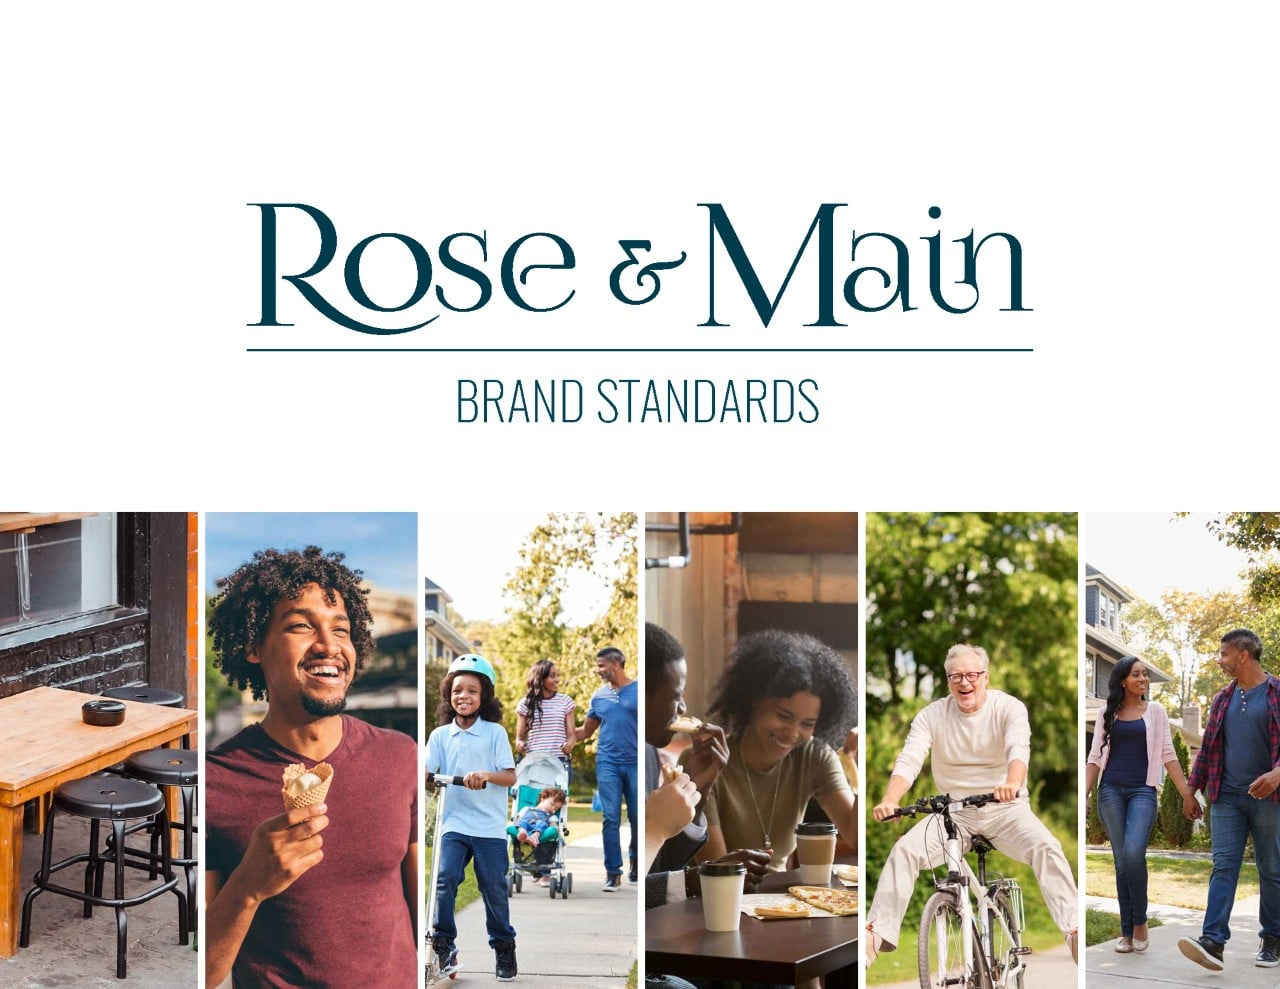 Rose & Main Brand Standards - Place Based Branding Cover Page